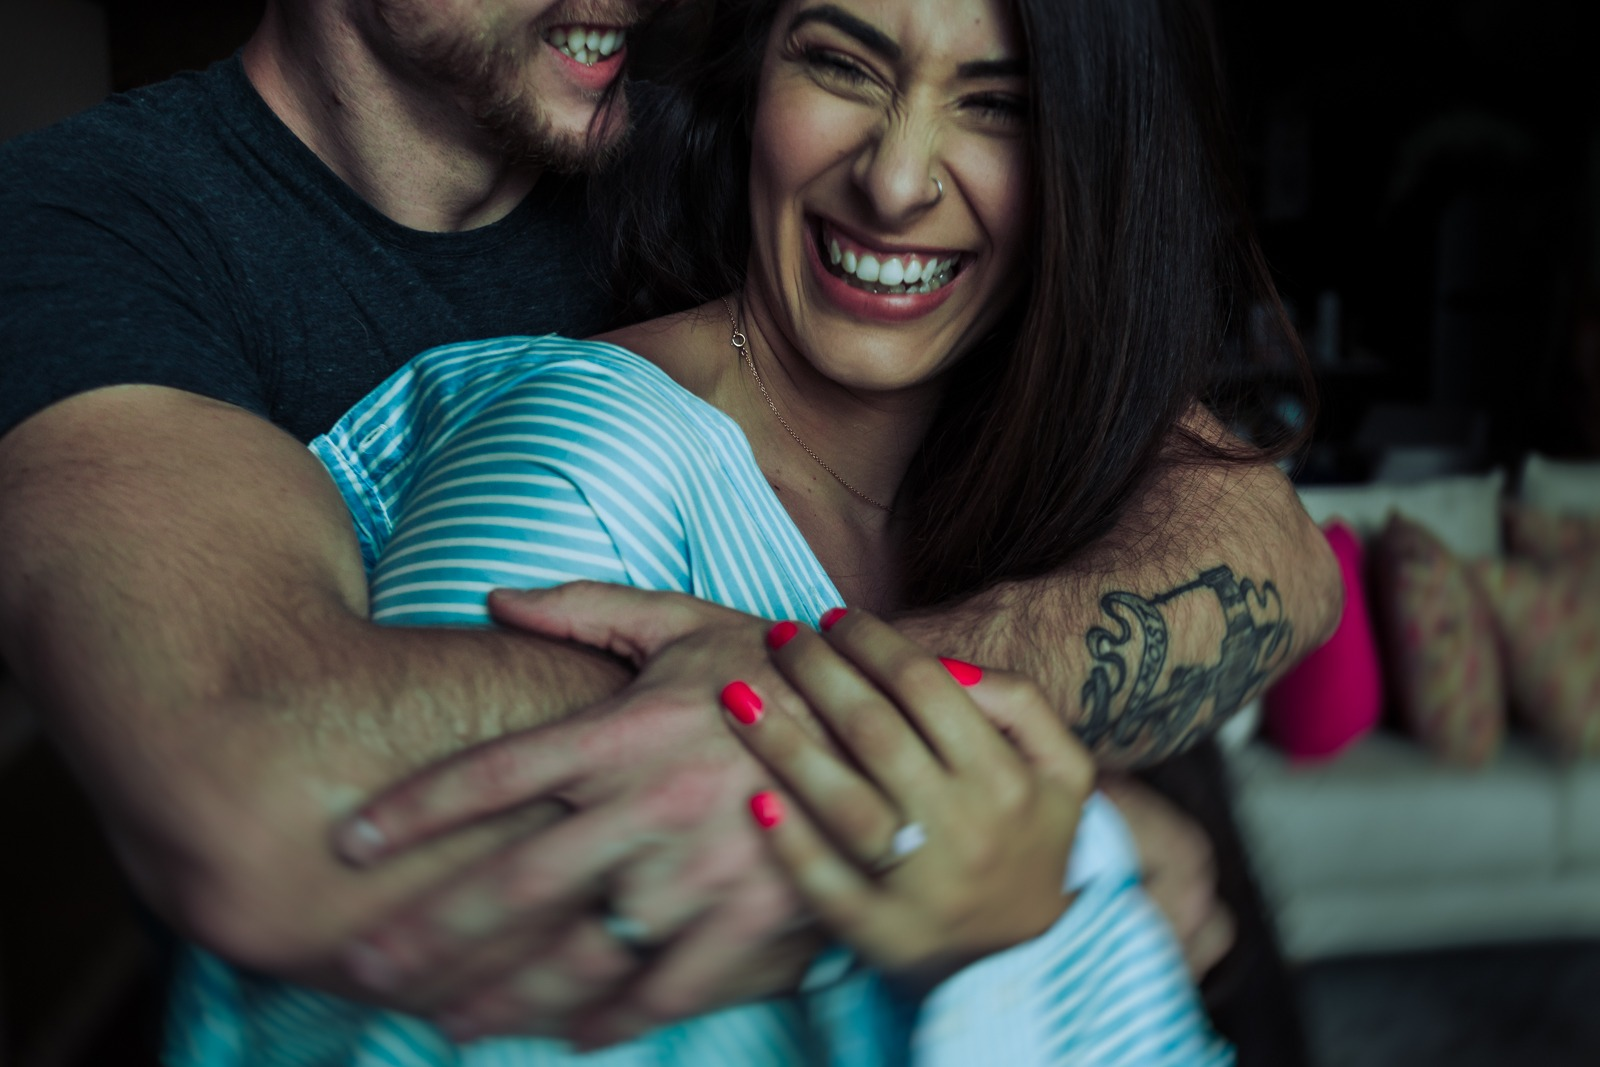 couple-smile-hug-moment-tattoo-ring-bride-groom-vallarta